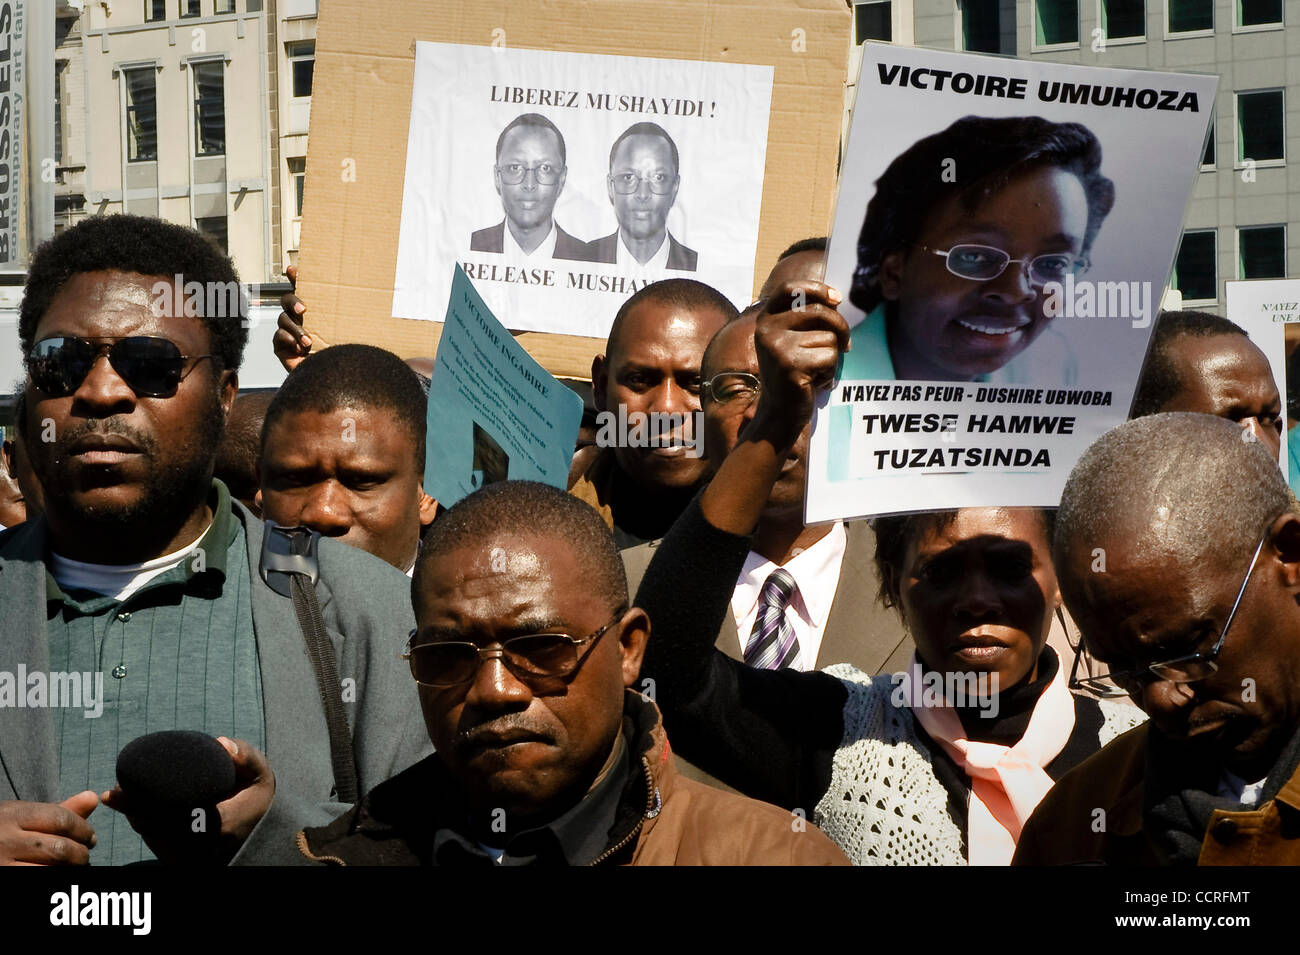 Demonstrators from Rwanda protest in front of  the building of the European Council  in  Brussels, Belgium on 2010 - Stock Image